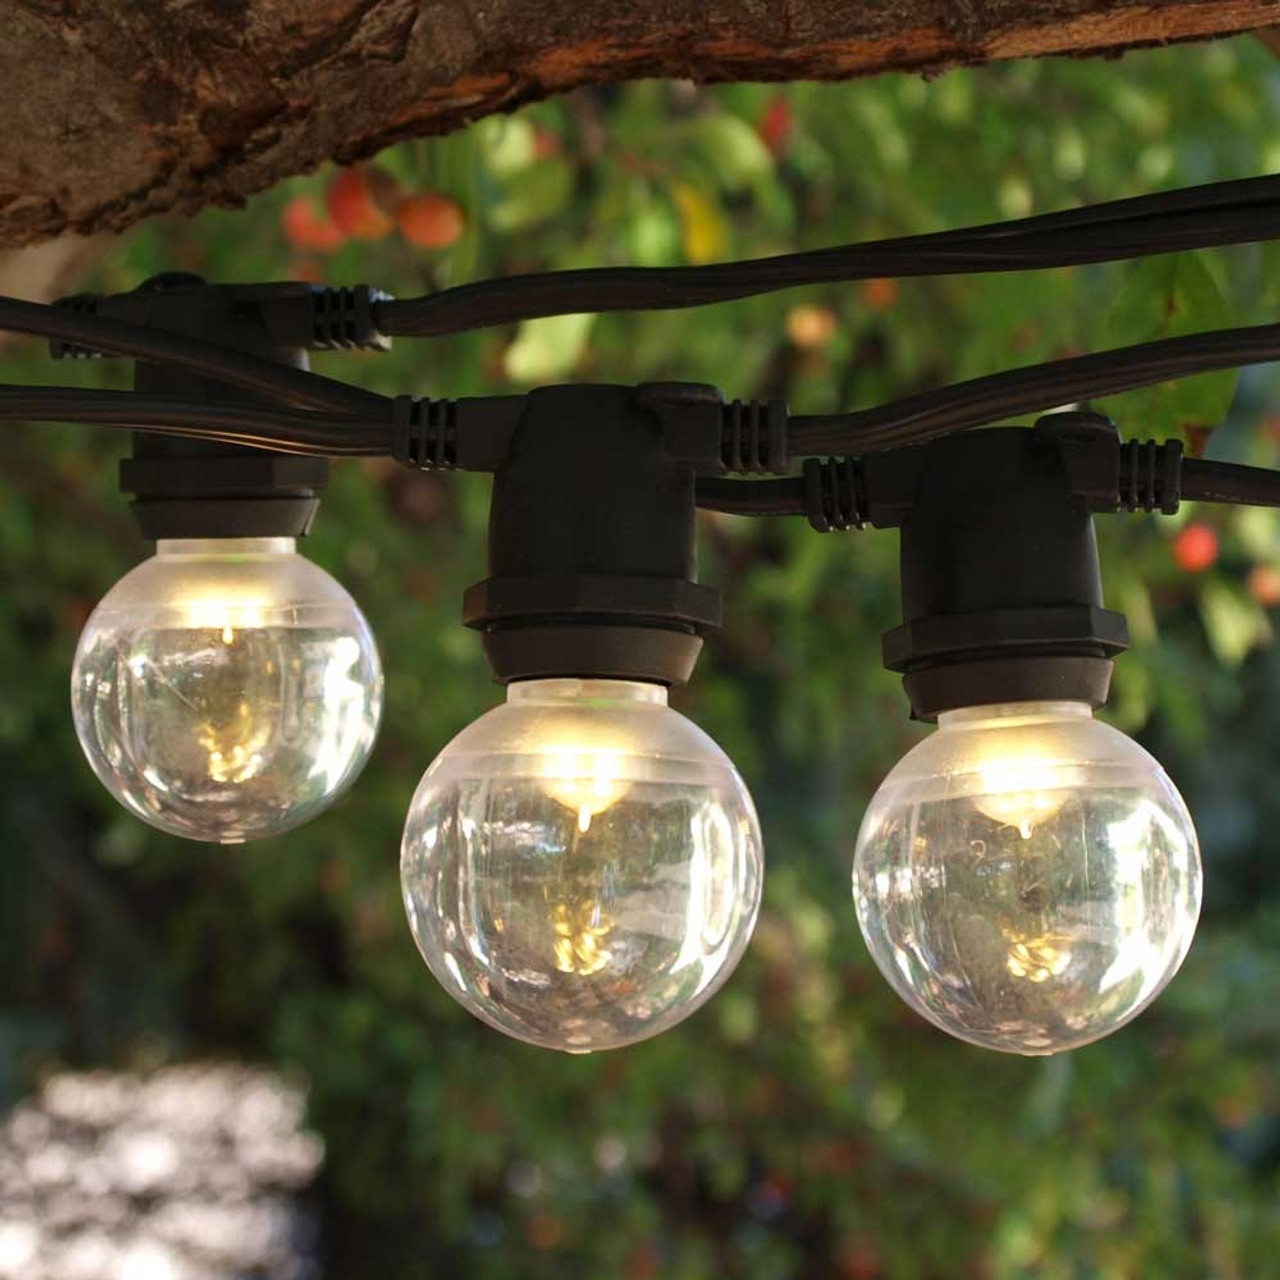 56 ft black commercial c9 string light with smooth led g40 warm white bulbs